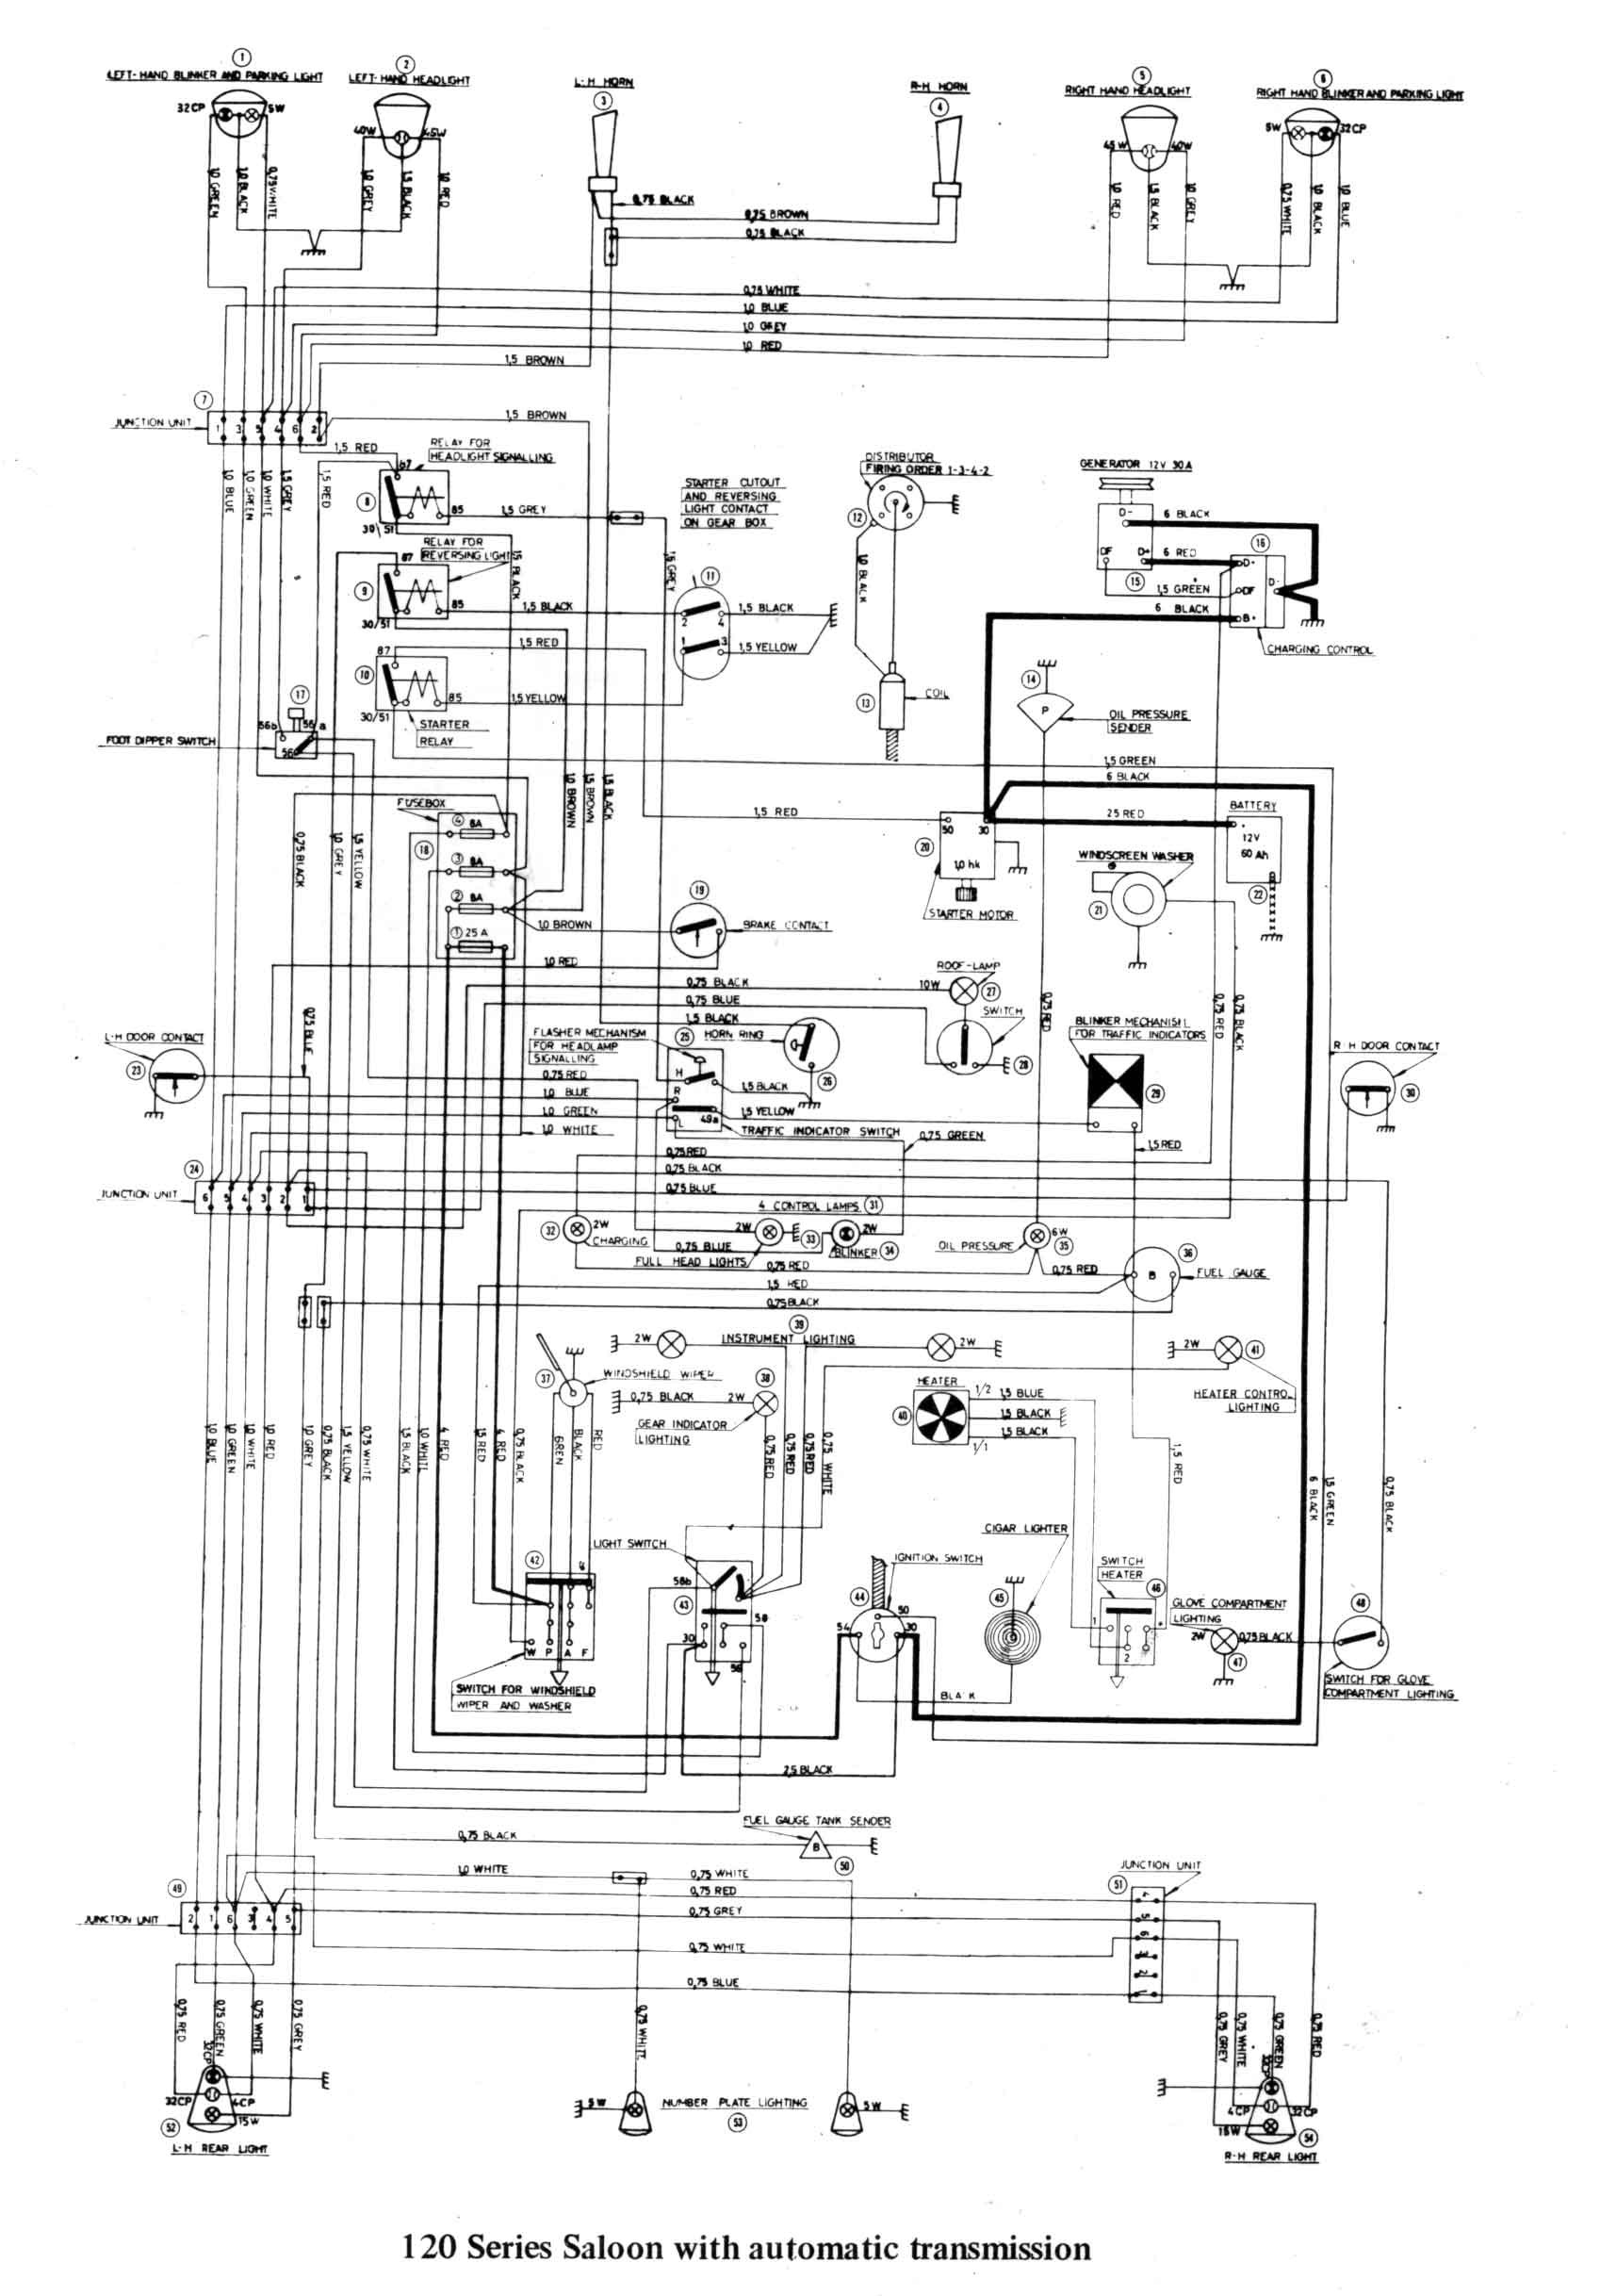 hight resolution of 2001 volvo wiring diagram wiring diagram third level 2007 volvo s60 wiring diagram volvo wiring diagram s60